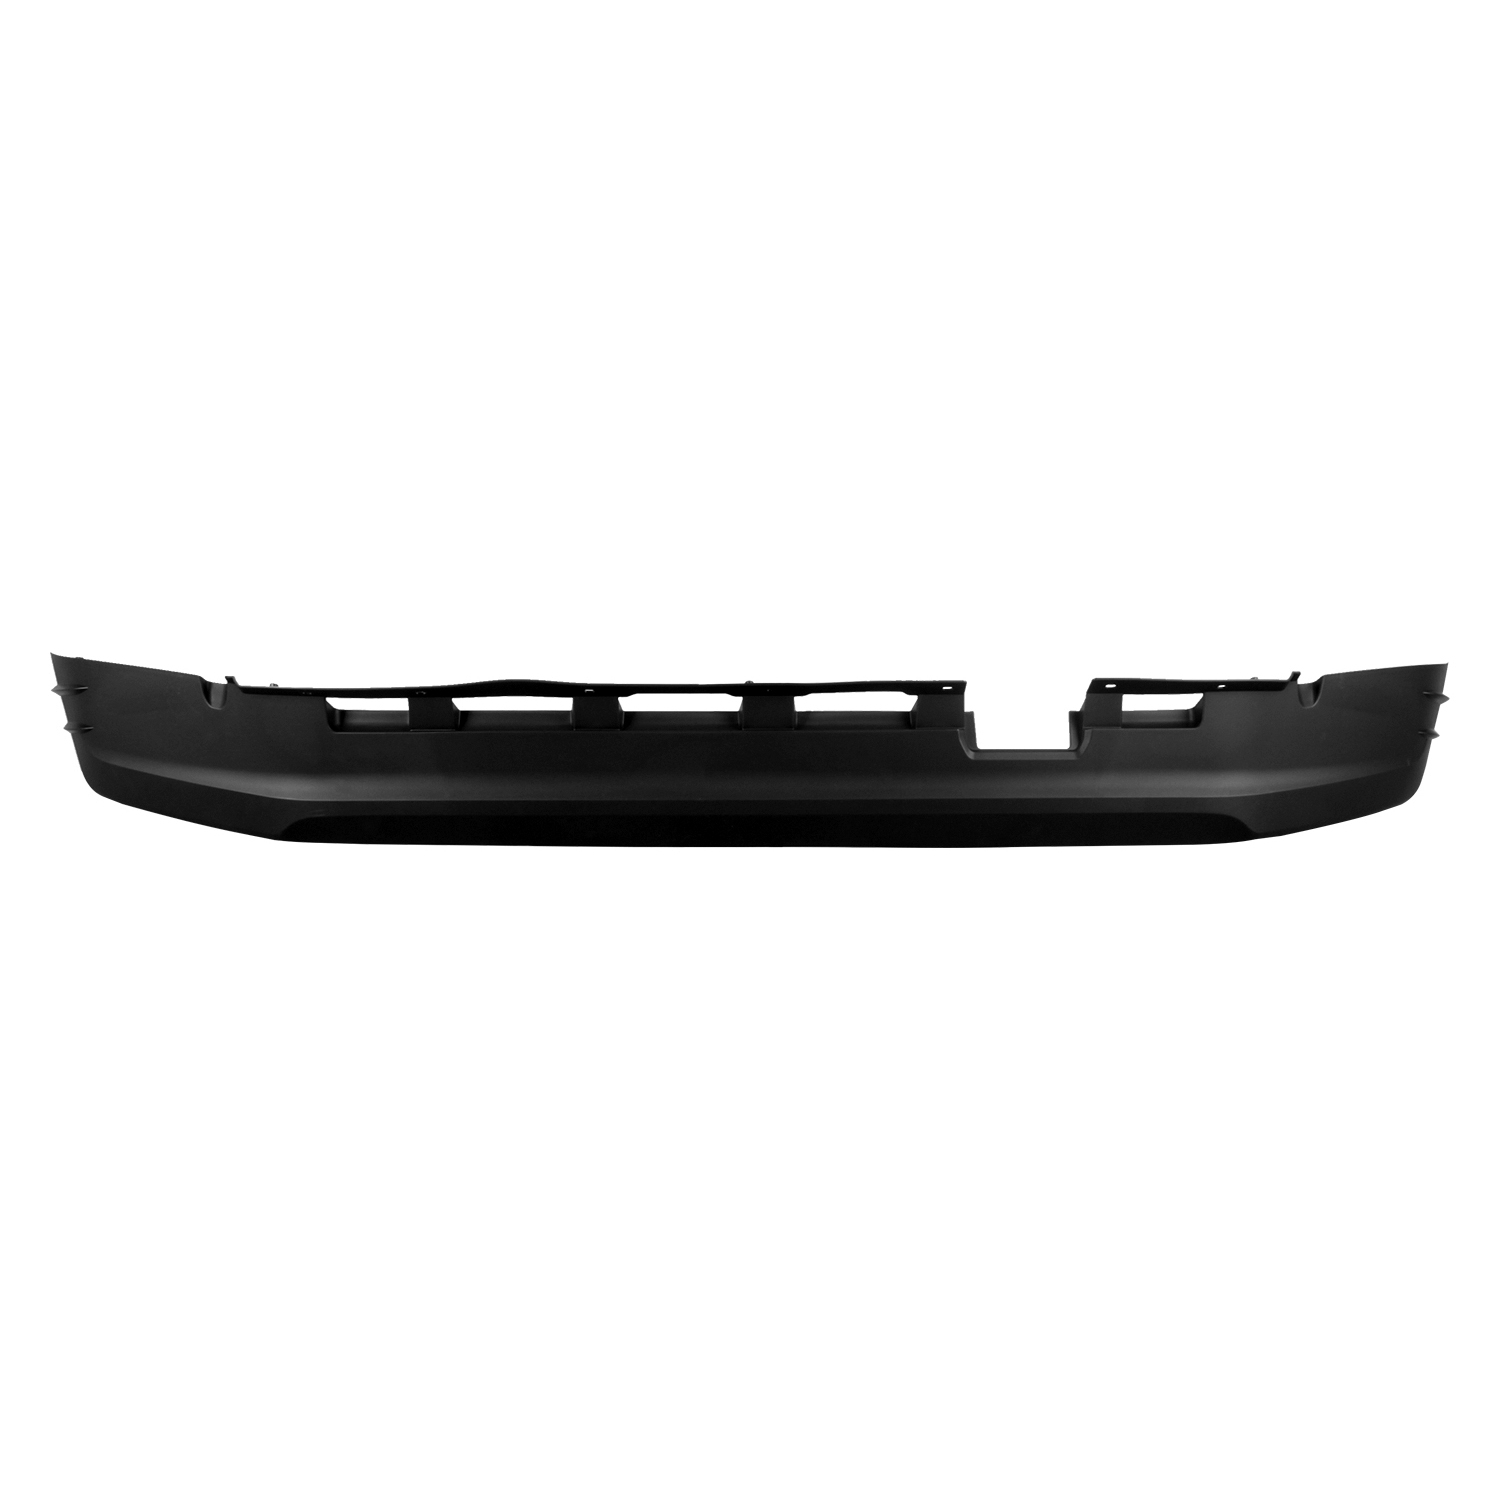 Fits 2016-2018 Toyota Tacoma 2WD Front Lower Valance Panel 5391104210